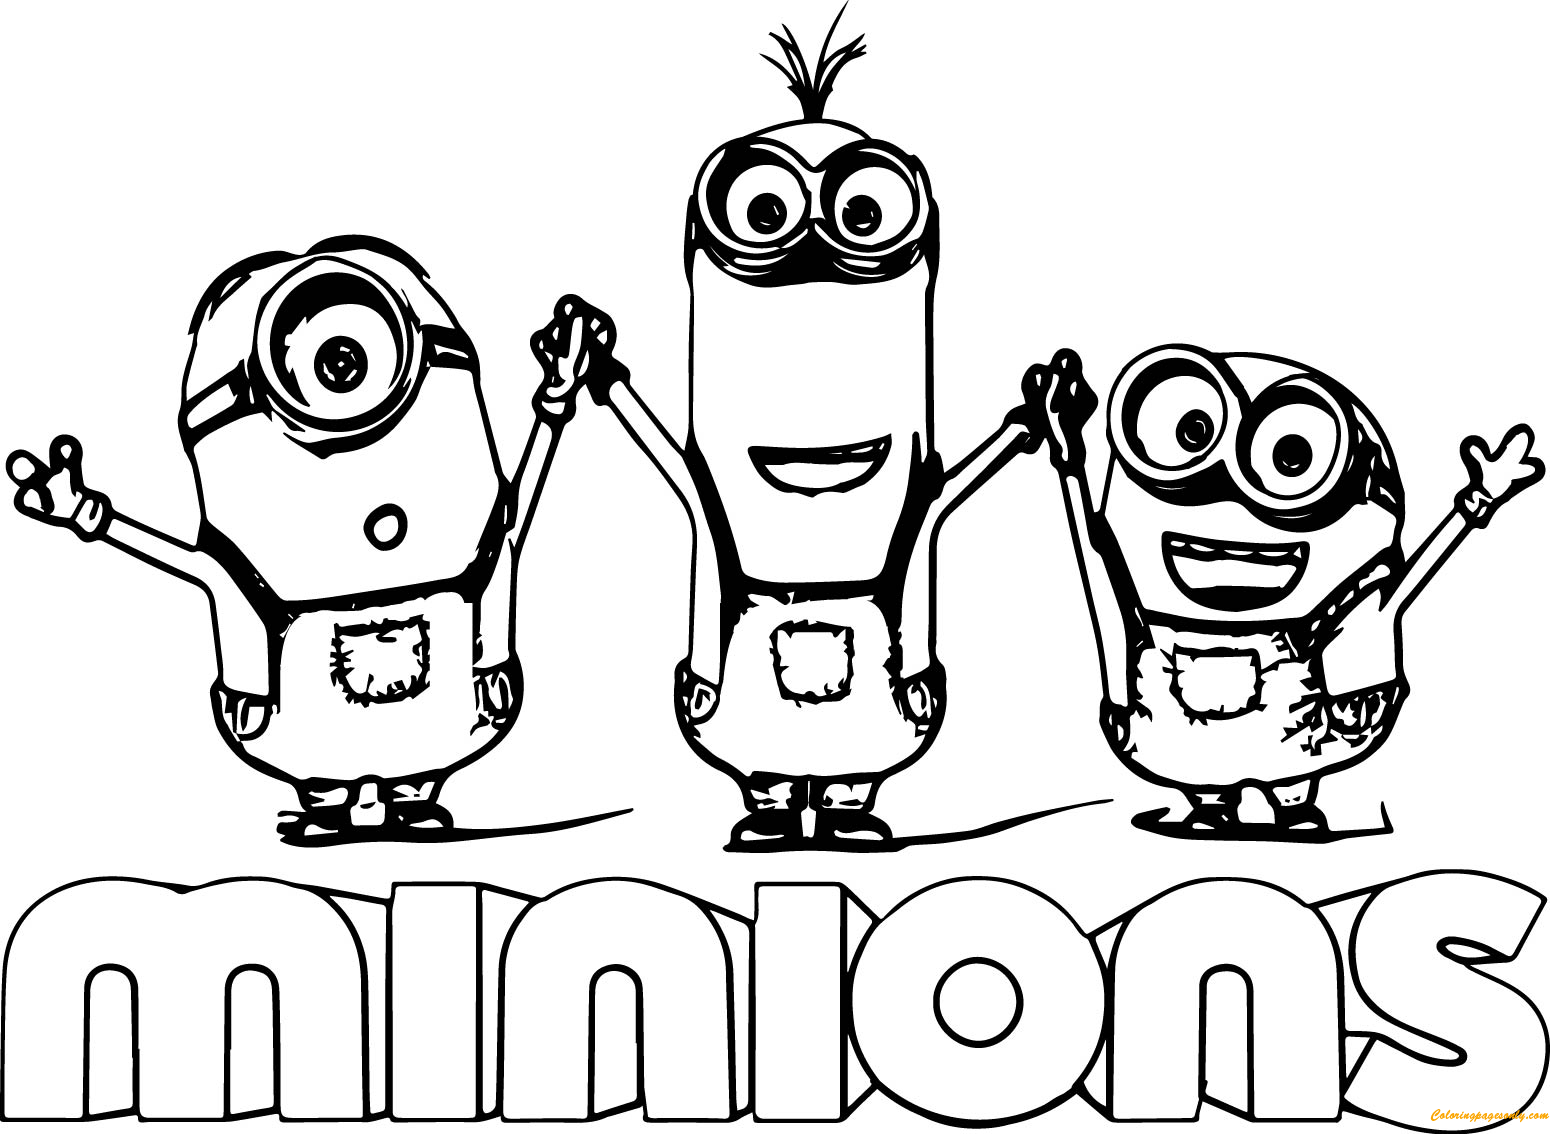 Minion Kevin With Two Minions Coloring Page Free